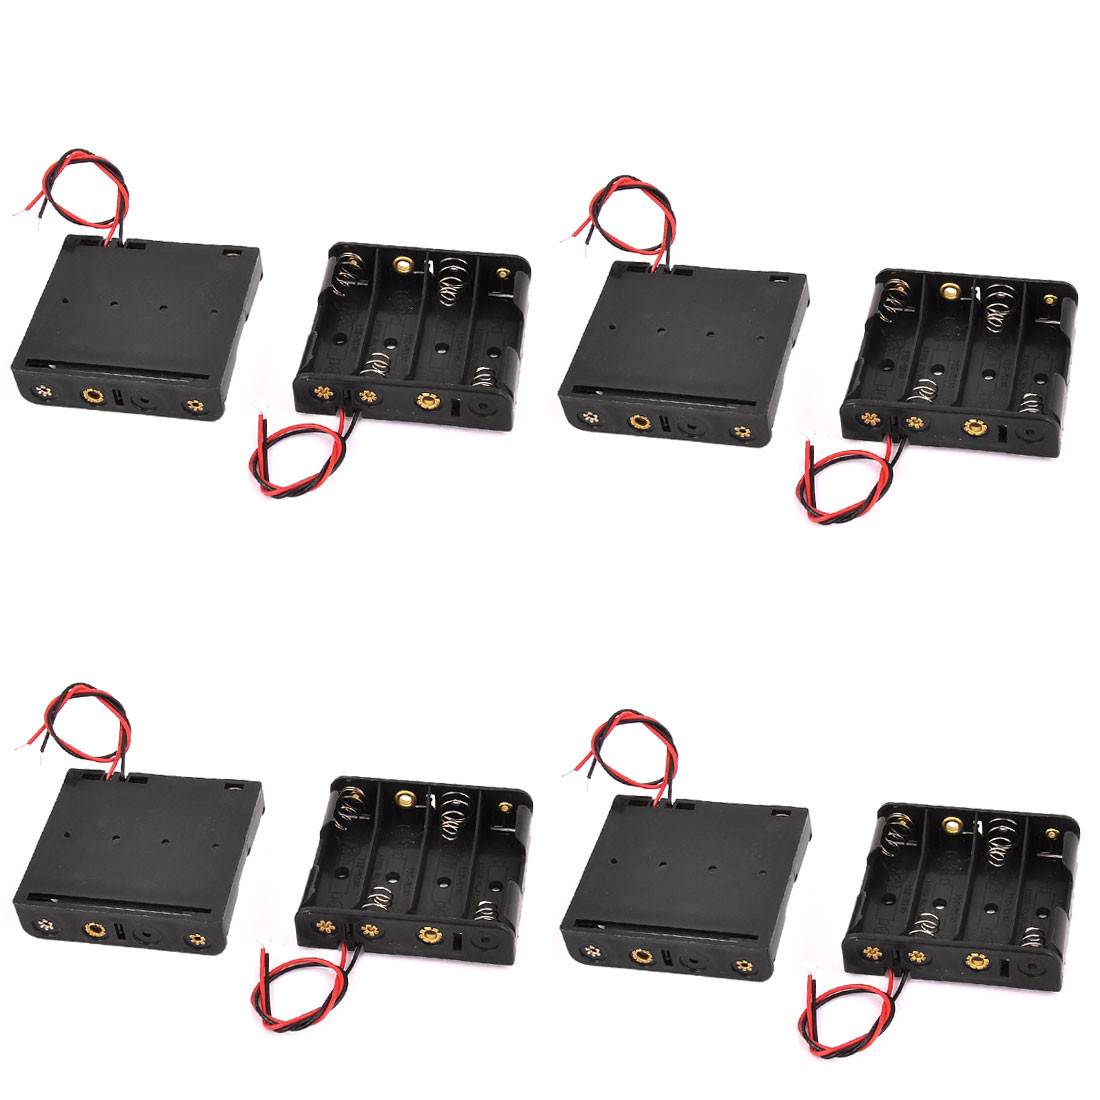 8 Pcs 4 x 1.5V AA Black Battery Batteries Holder Case with Wire Leads